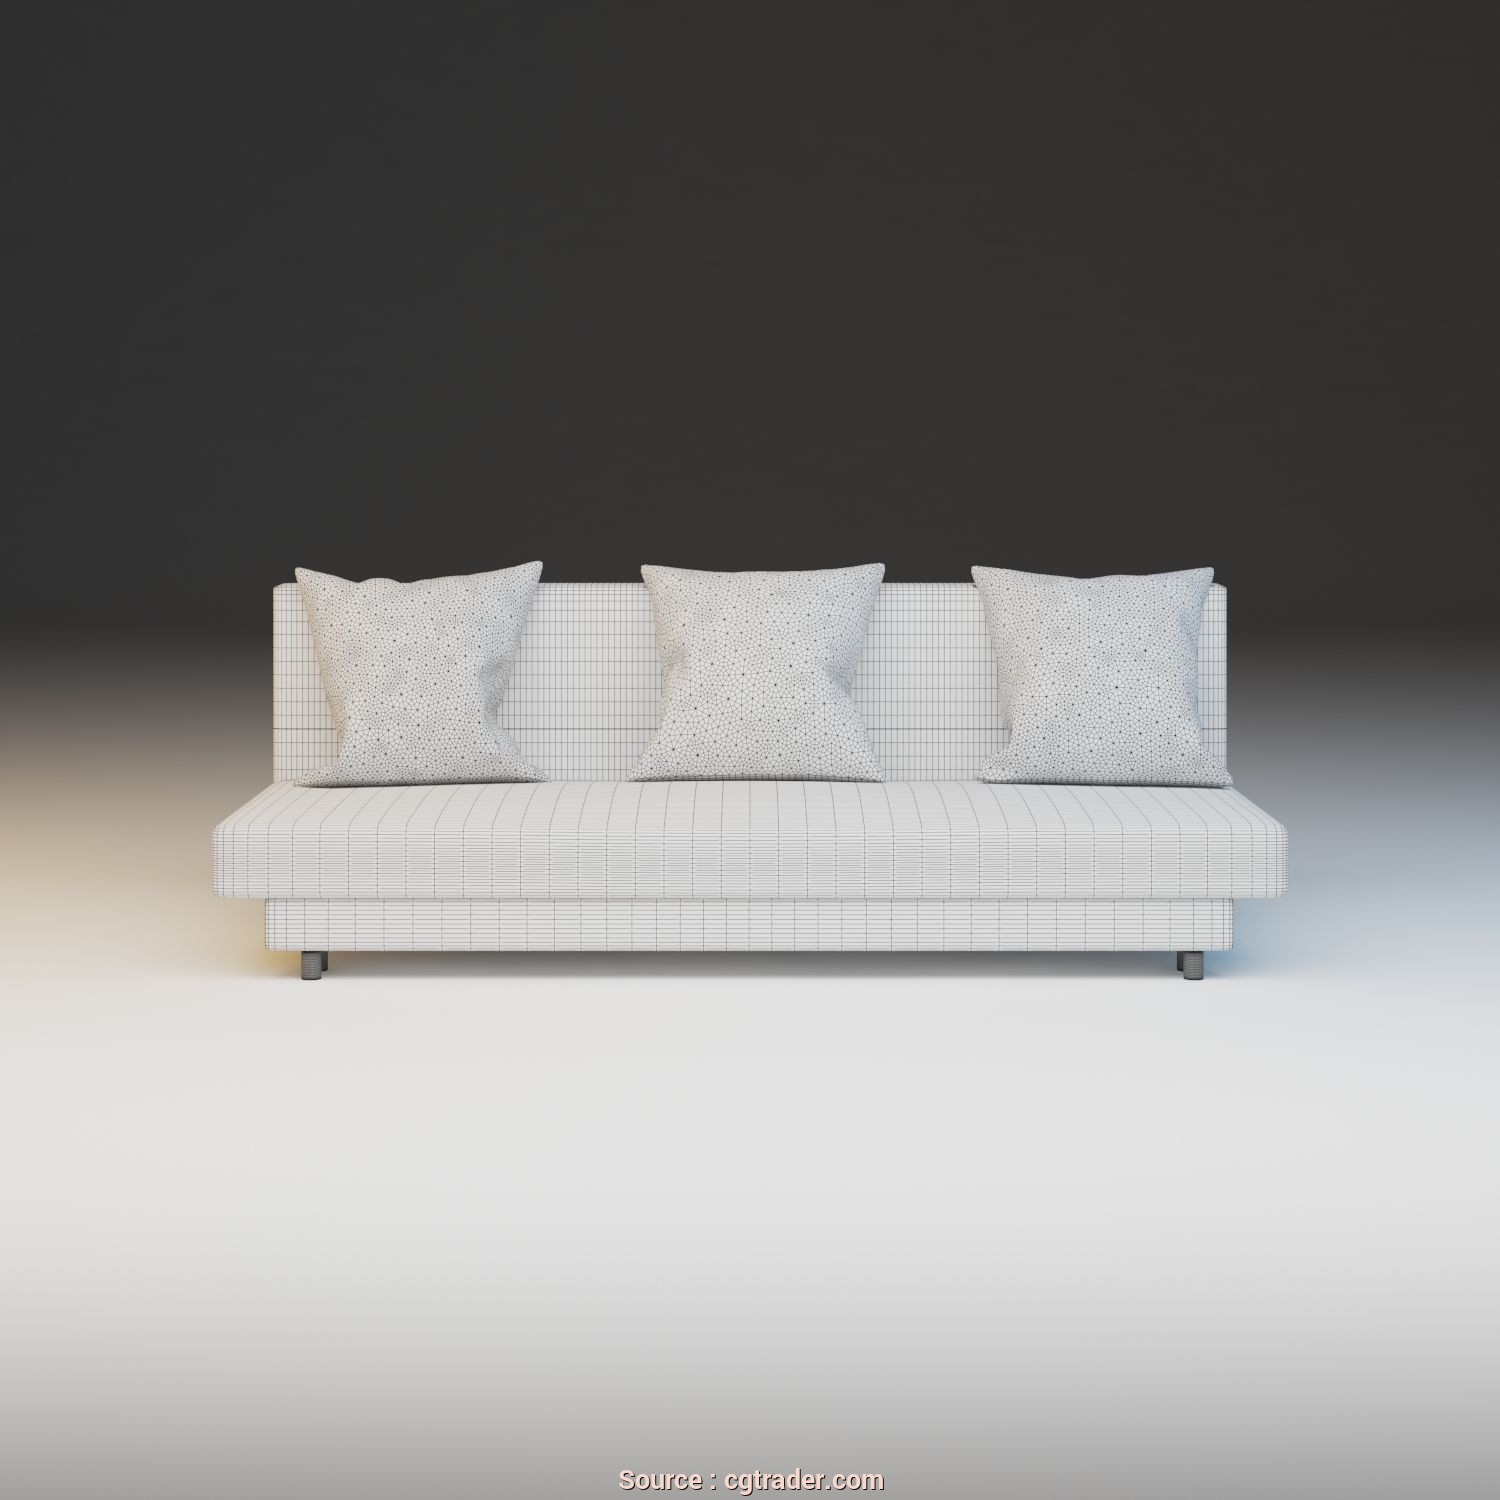 Asarum Ikea Reviews, Bellissimo ... Ikea, Asarum Sofa 3D Model, Obj, 3Ds, 4